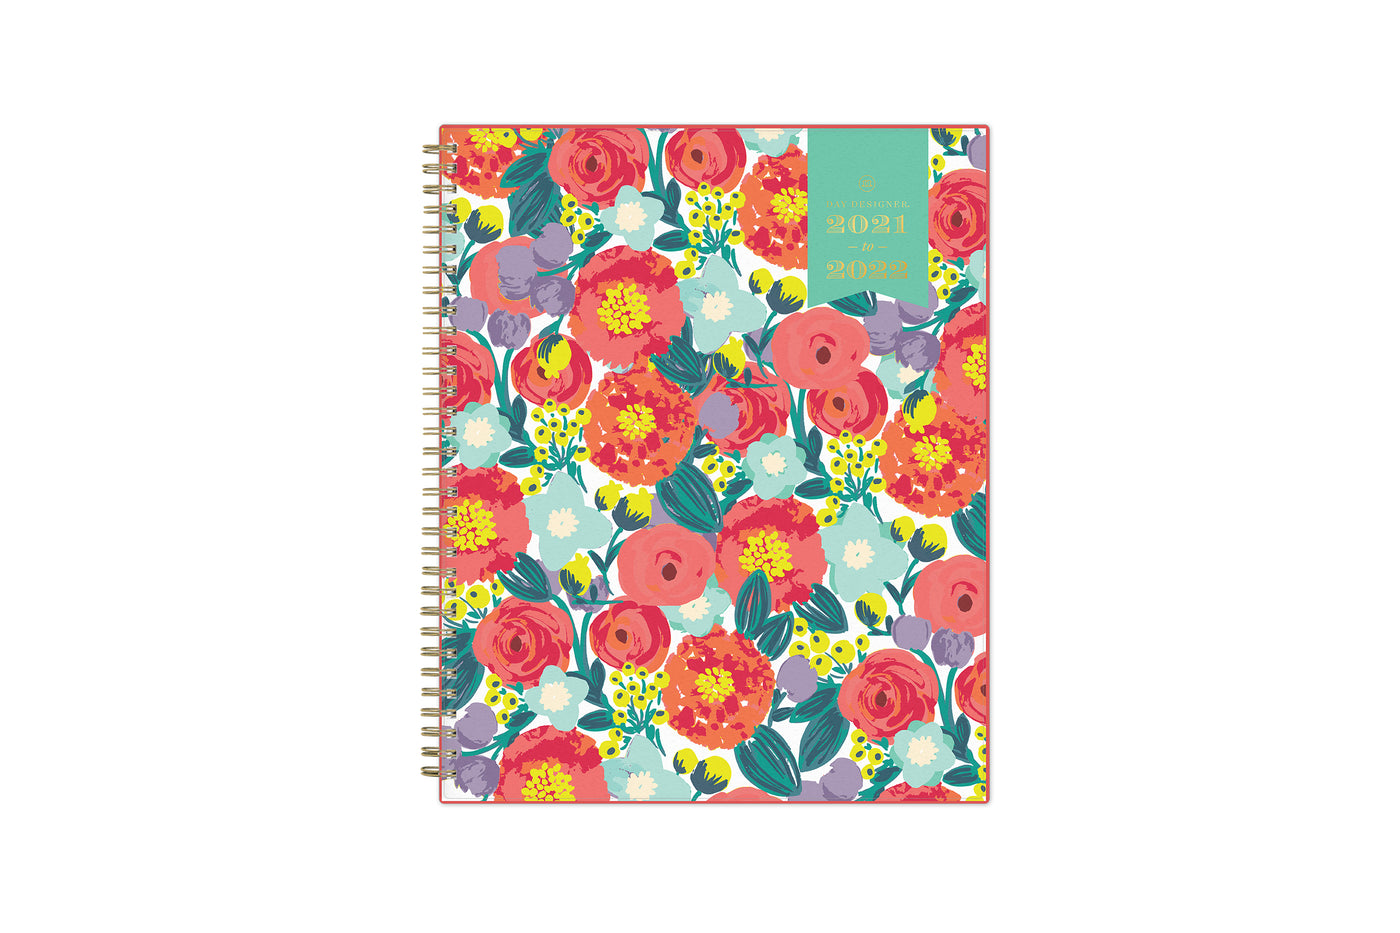 2021-2022 weekly and monthly planner for the academic school year featuring floral blossoms from Day designer in 8.5x11 planner size